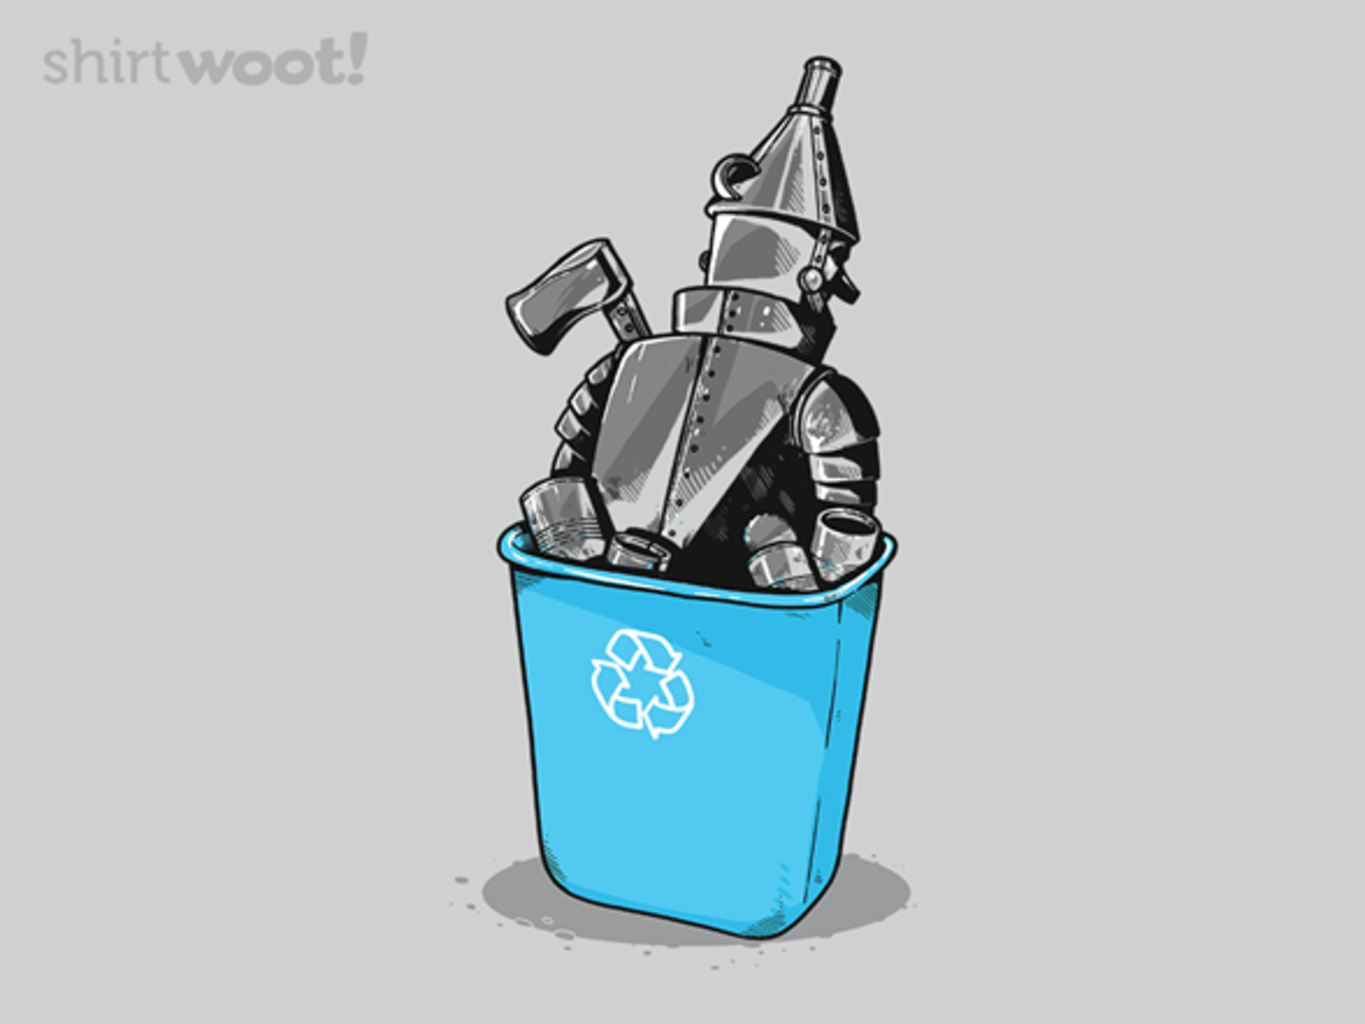 Woot!: Recycled - $8.00 + $5 standard shipping